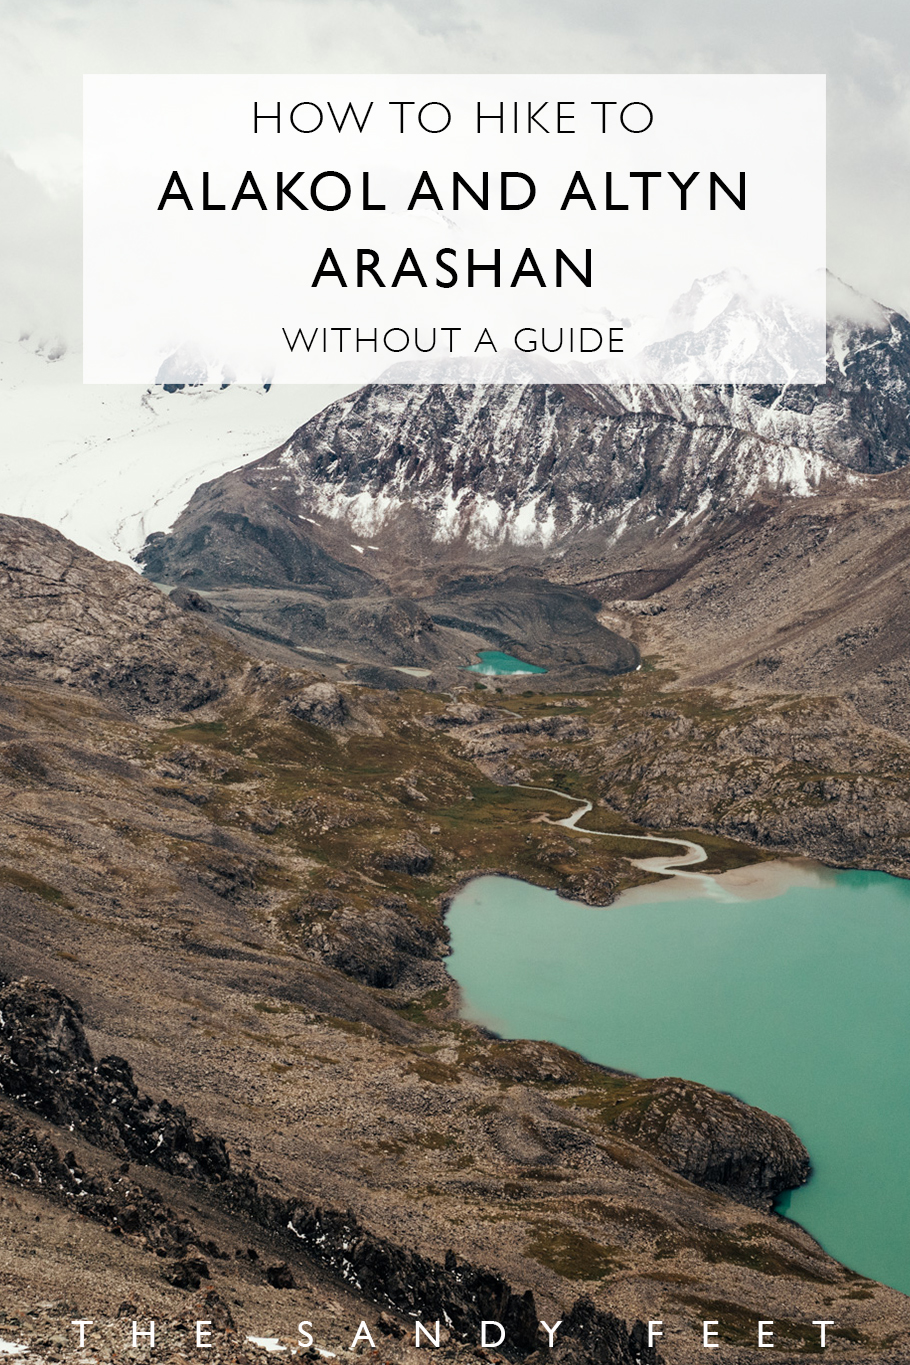 The Most Beautiful Hike In Kyrgyzstan: Hiking from To Alakol and Altyn Arashan Without A Guide